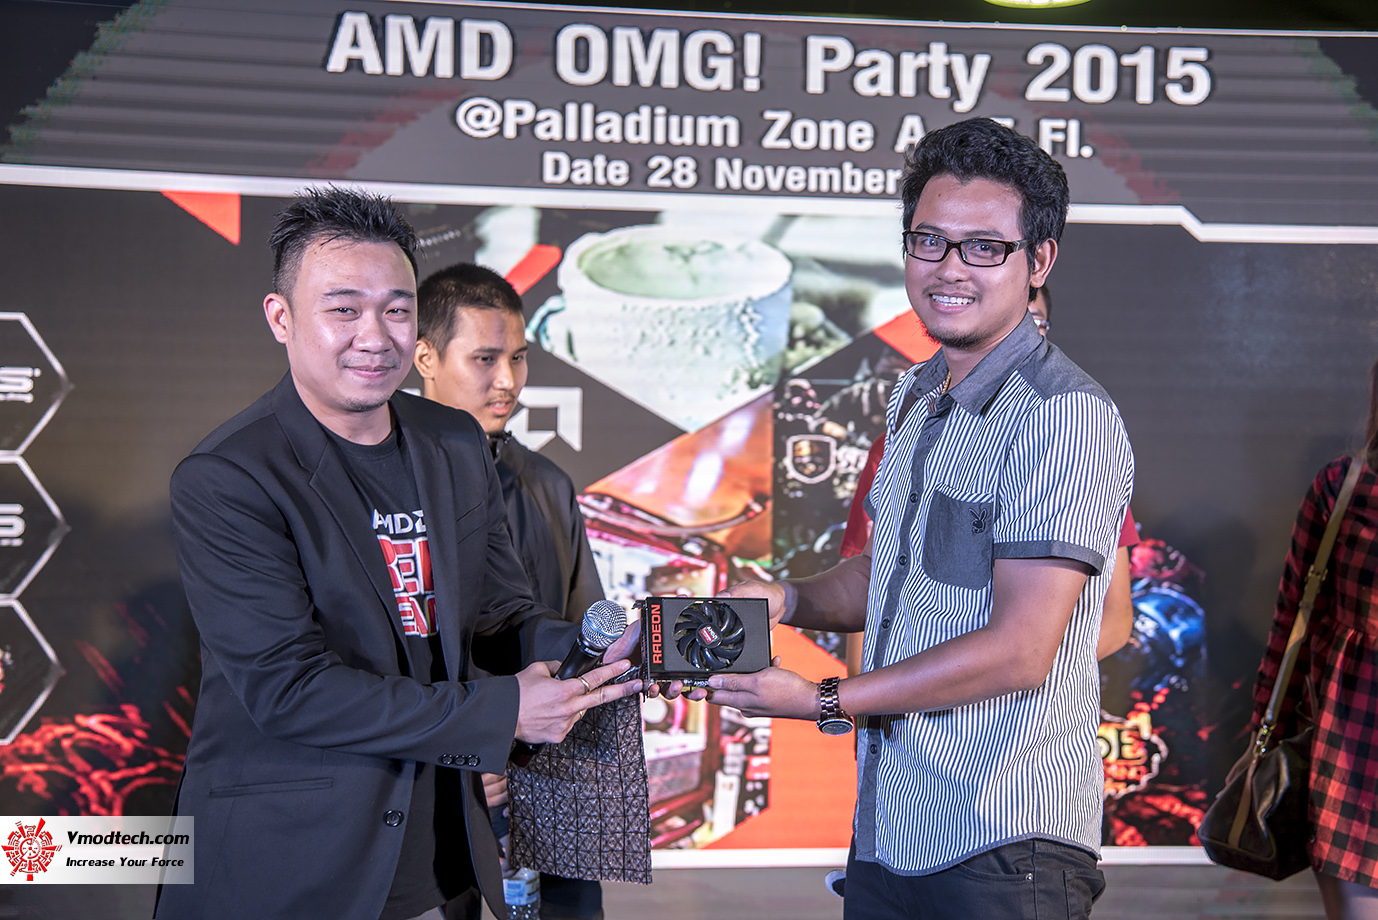 dsc 3256 AMD OMG! Party 2015 (AMD Overclock Modding Gaming Party 2015)